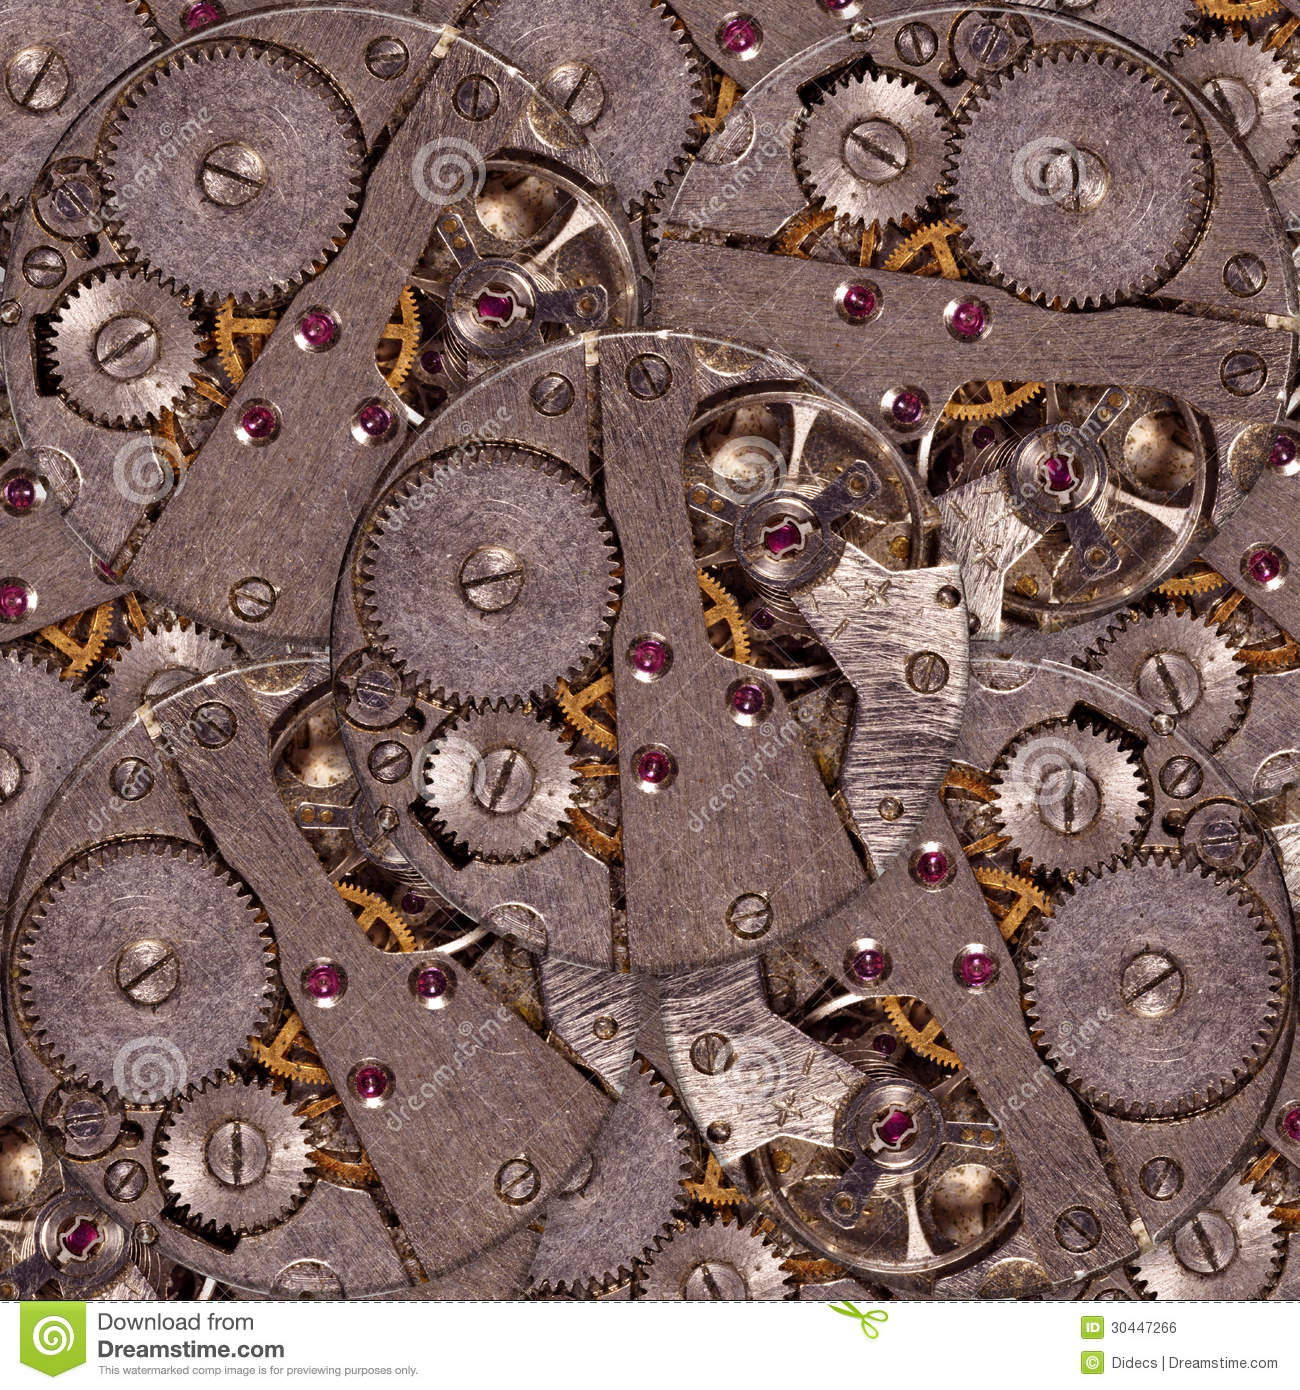 Old Clock Gears : Old clock mechanism with gears royalty free stock image